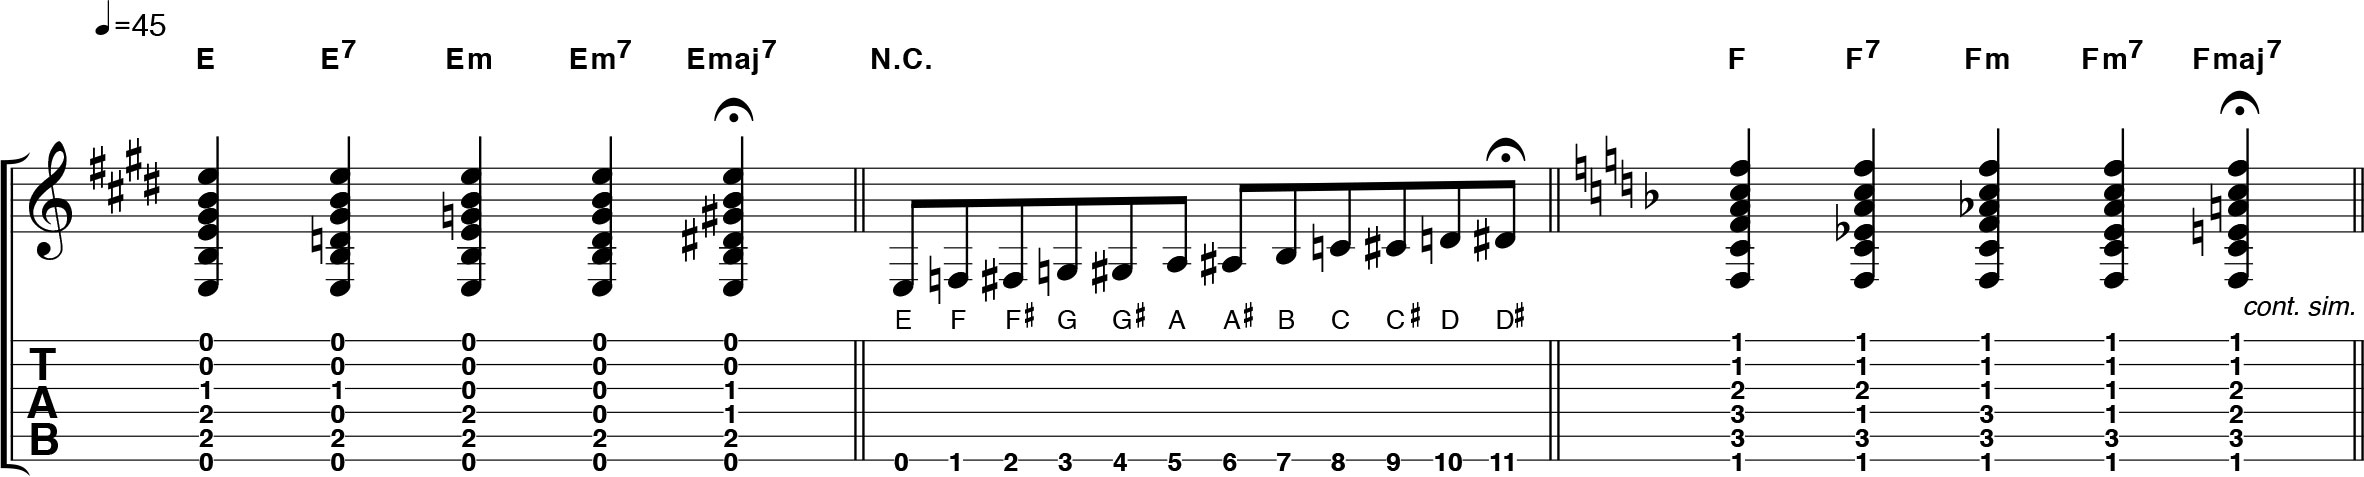 Learn 60 guitar chords in 20 minutes with this easy lesson | MusicRadar